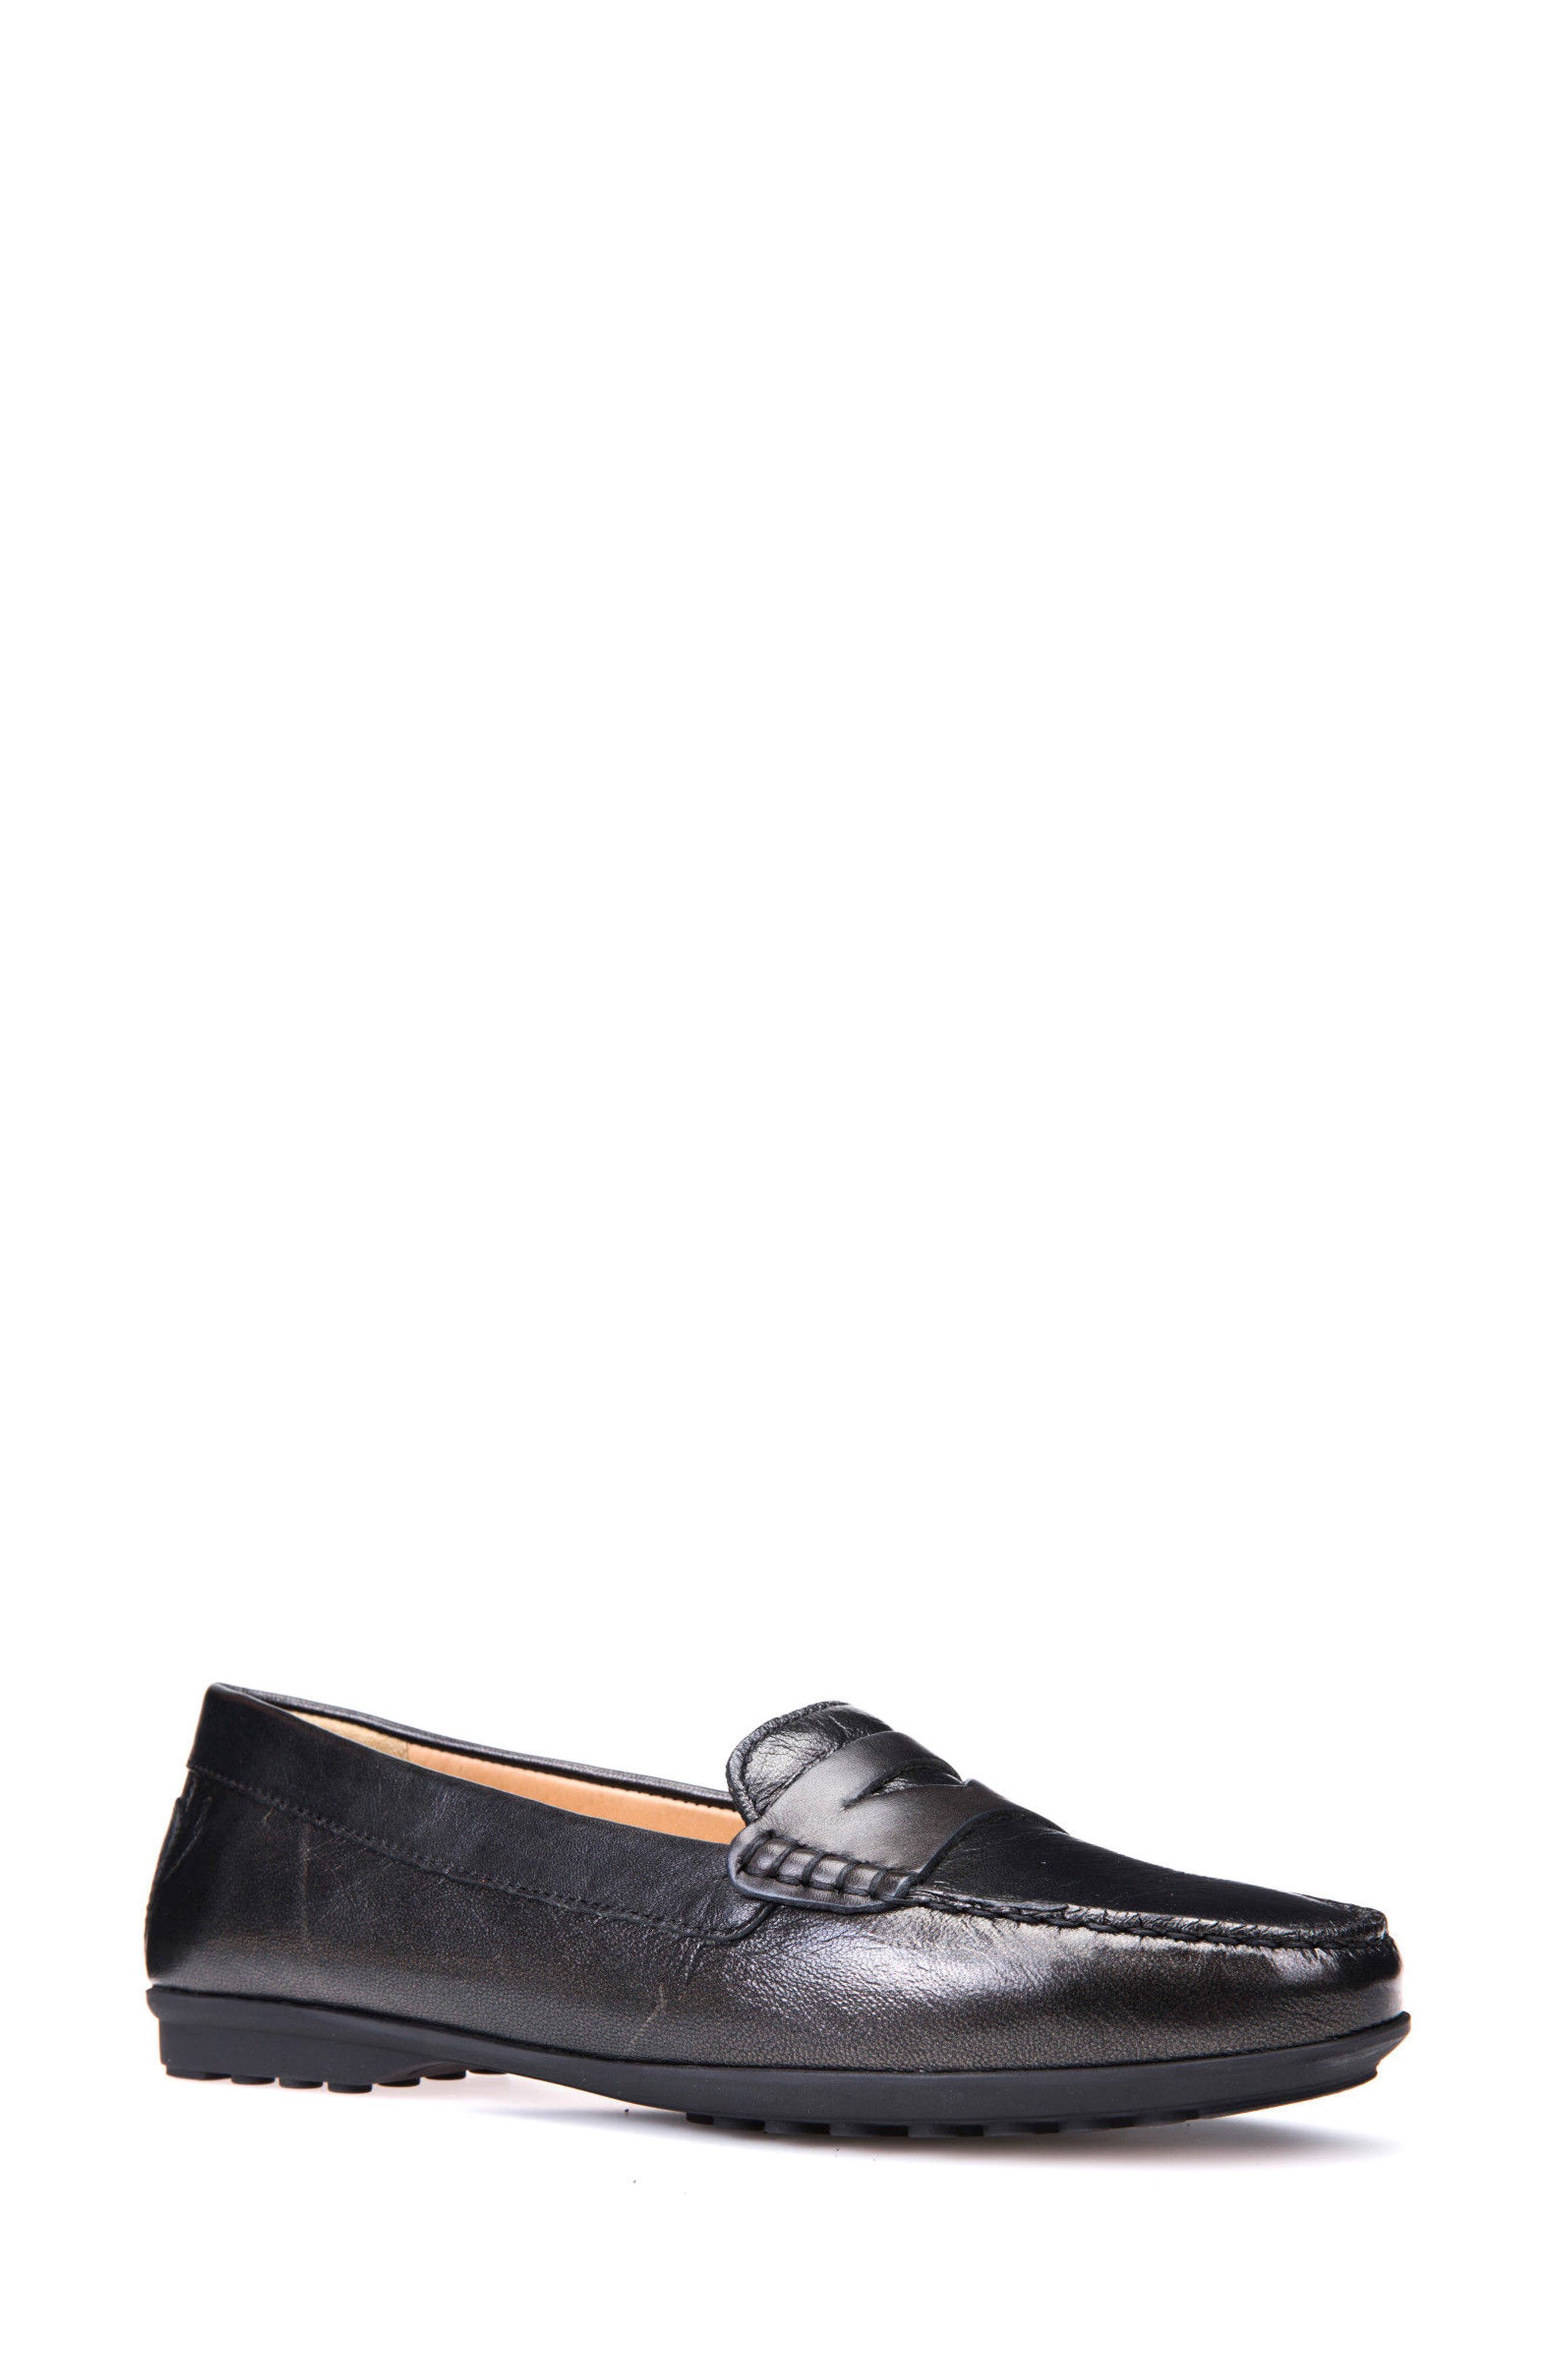 GEOX Elidia 5 Penny Loafer